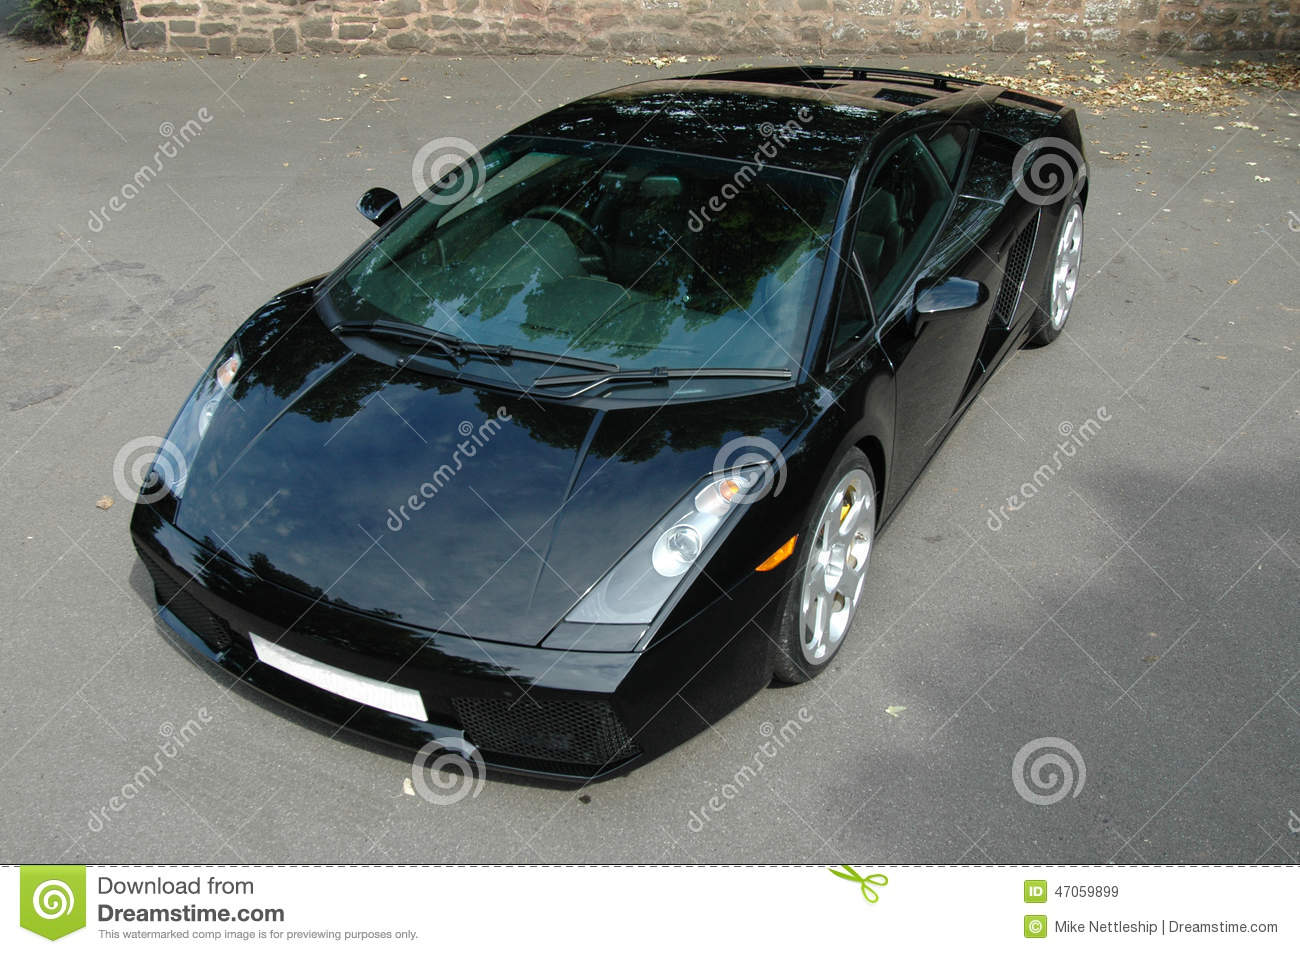 Black Lamborghini Murcielago Sports Car Alloy Wheels Stock Image